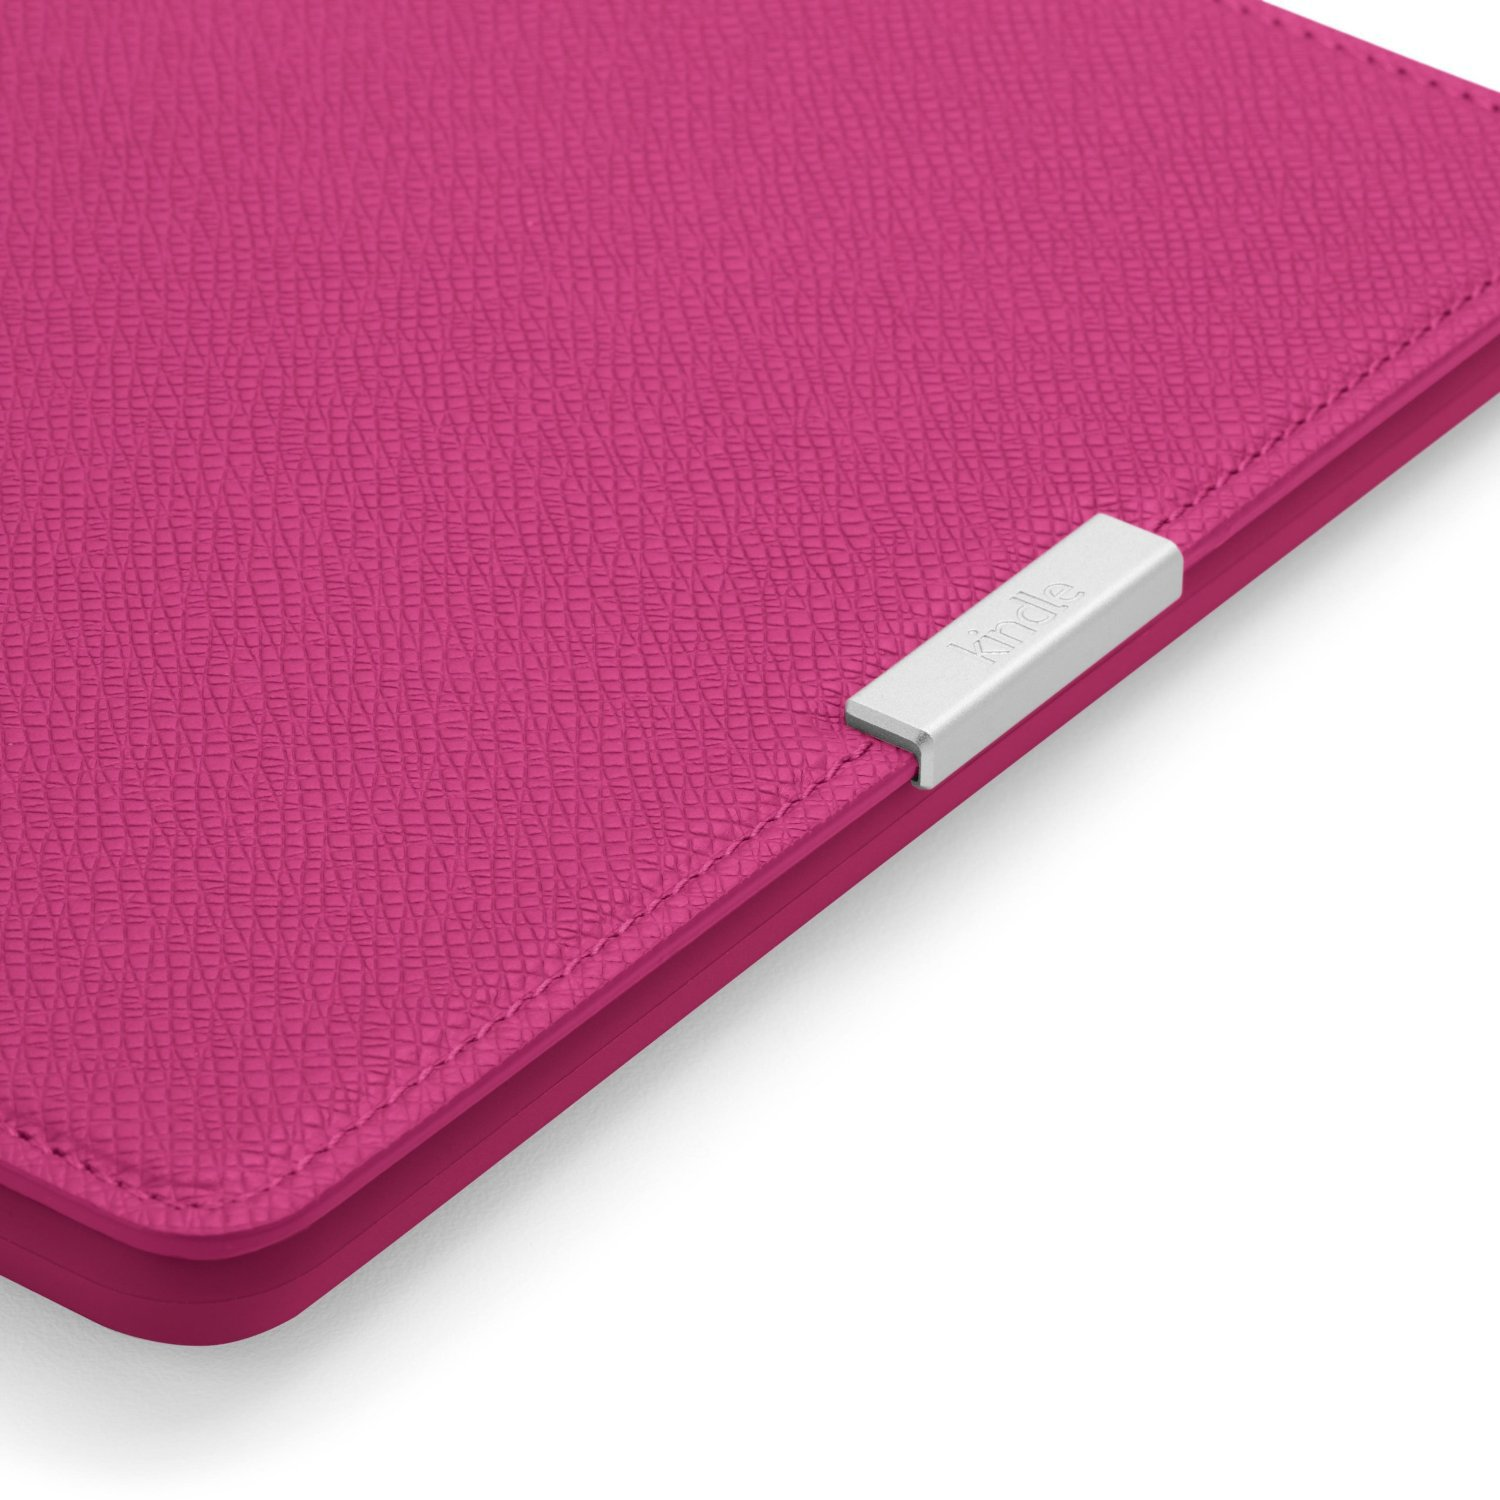 Чехол Leather Cover для Amazon Kindle Paperwhite Fuchsia (Розовый). Фото N3